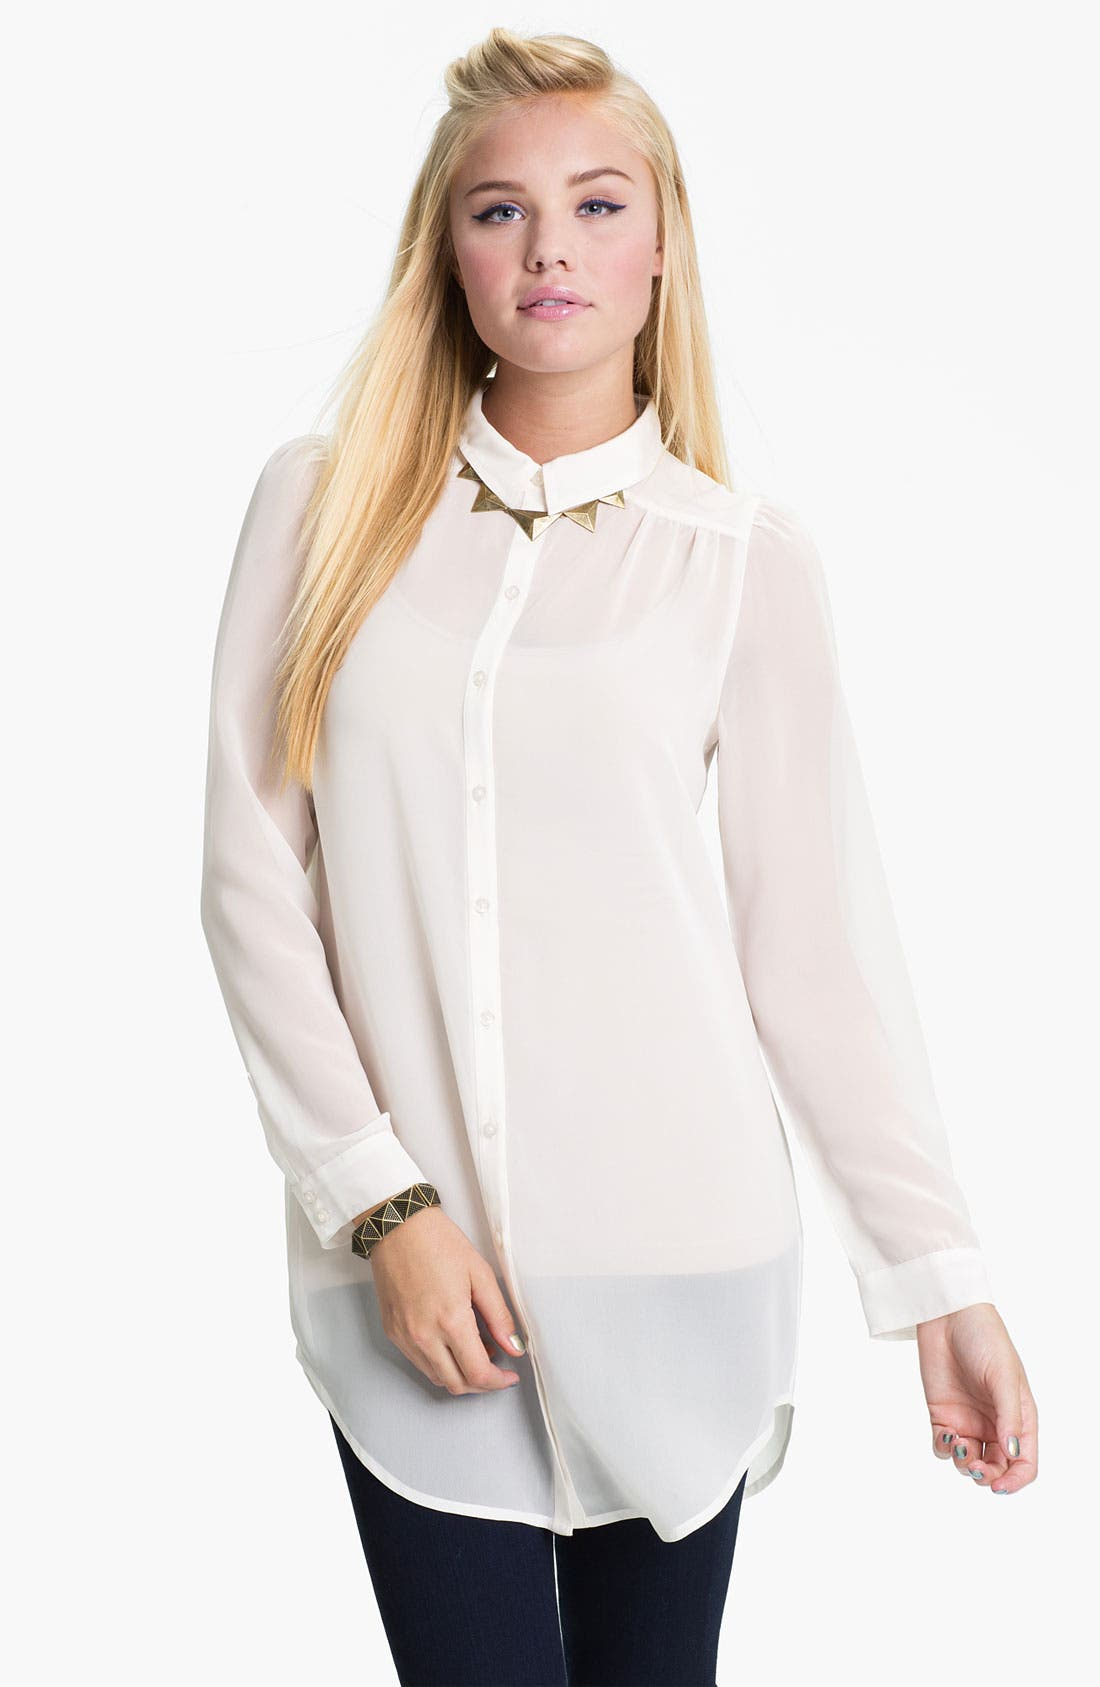 Alternate Image 1 Selected - Frenchi® Chiffon Tunic Shirt (Juniors)